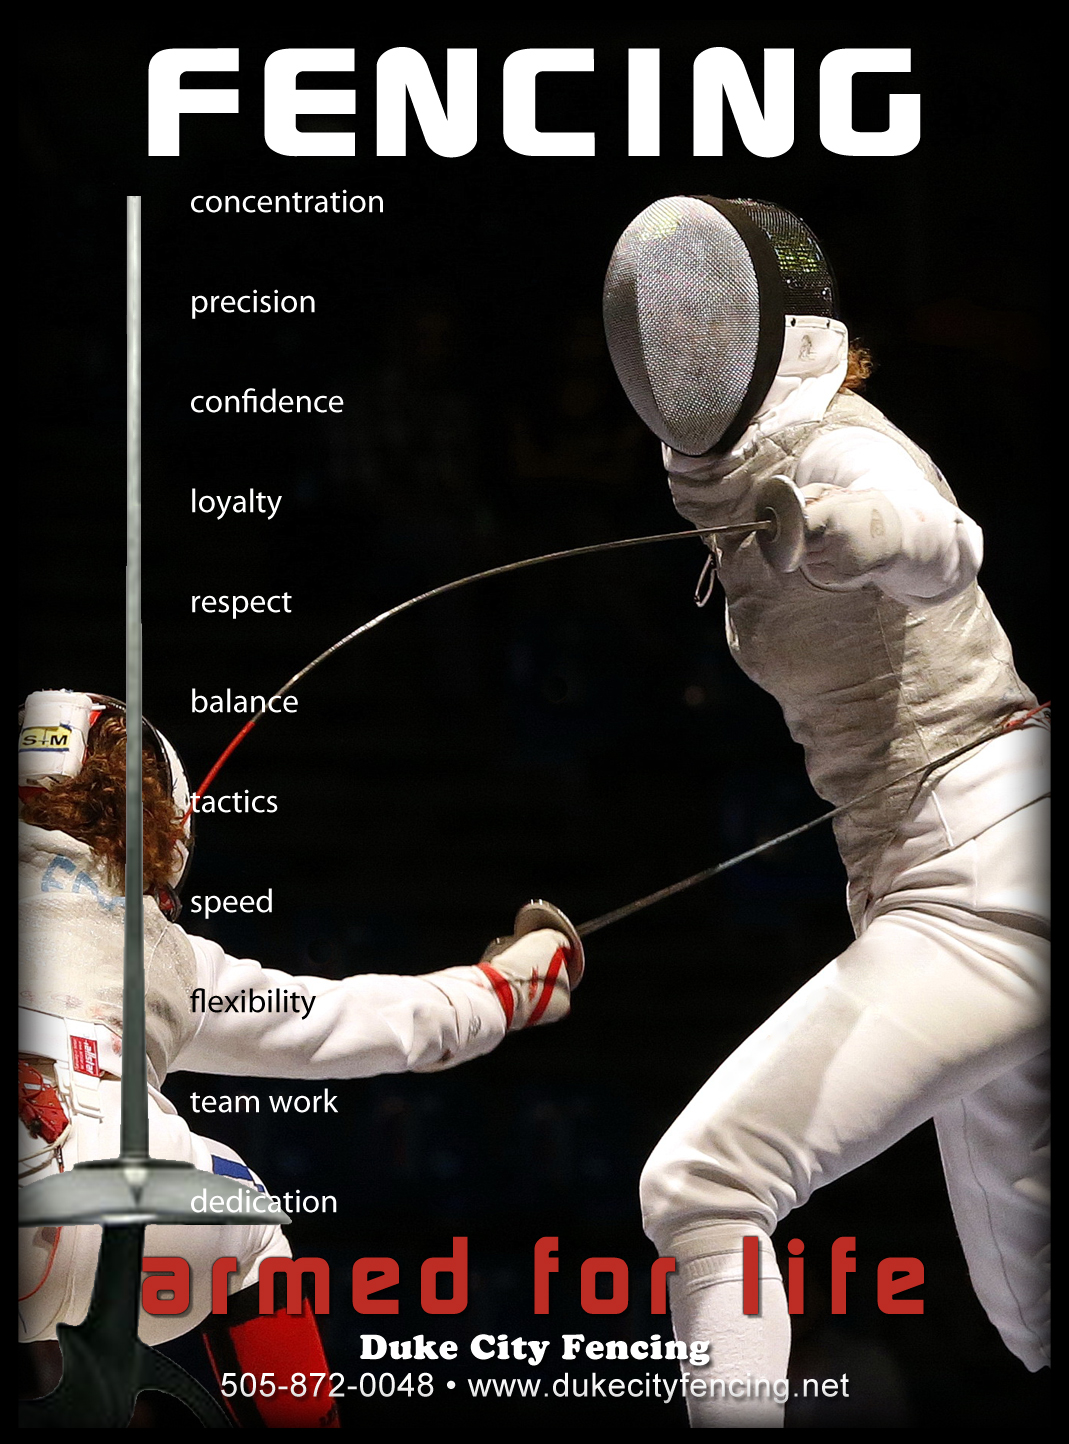 Duke City Fencing